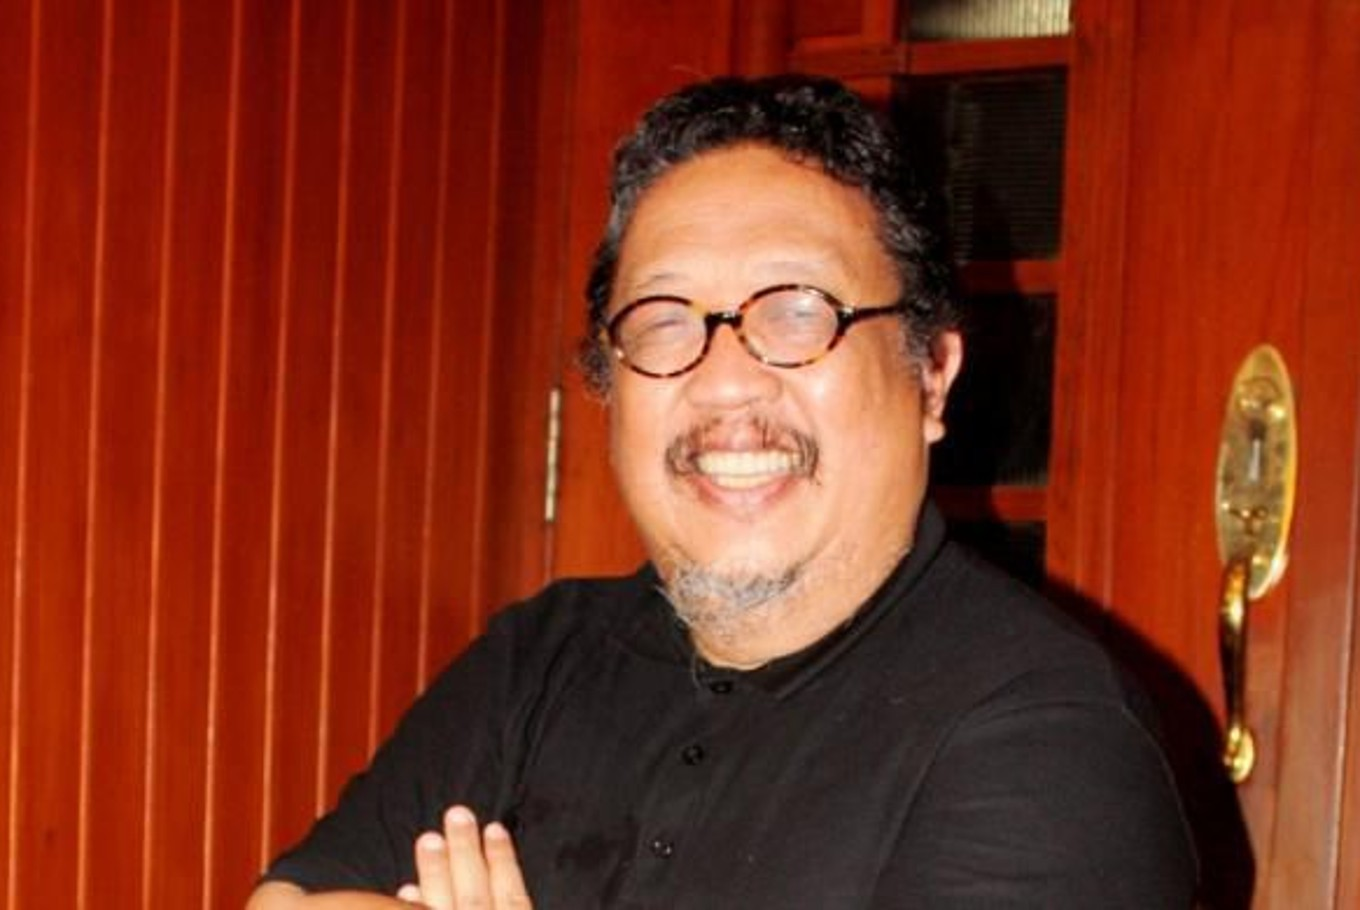 Book on late actor Didi Petet's acting legacy set for launch